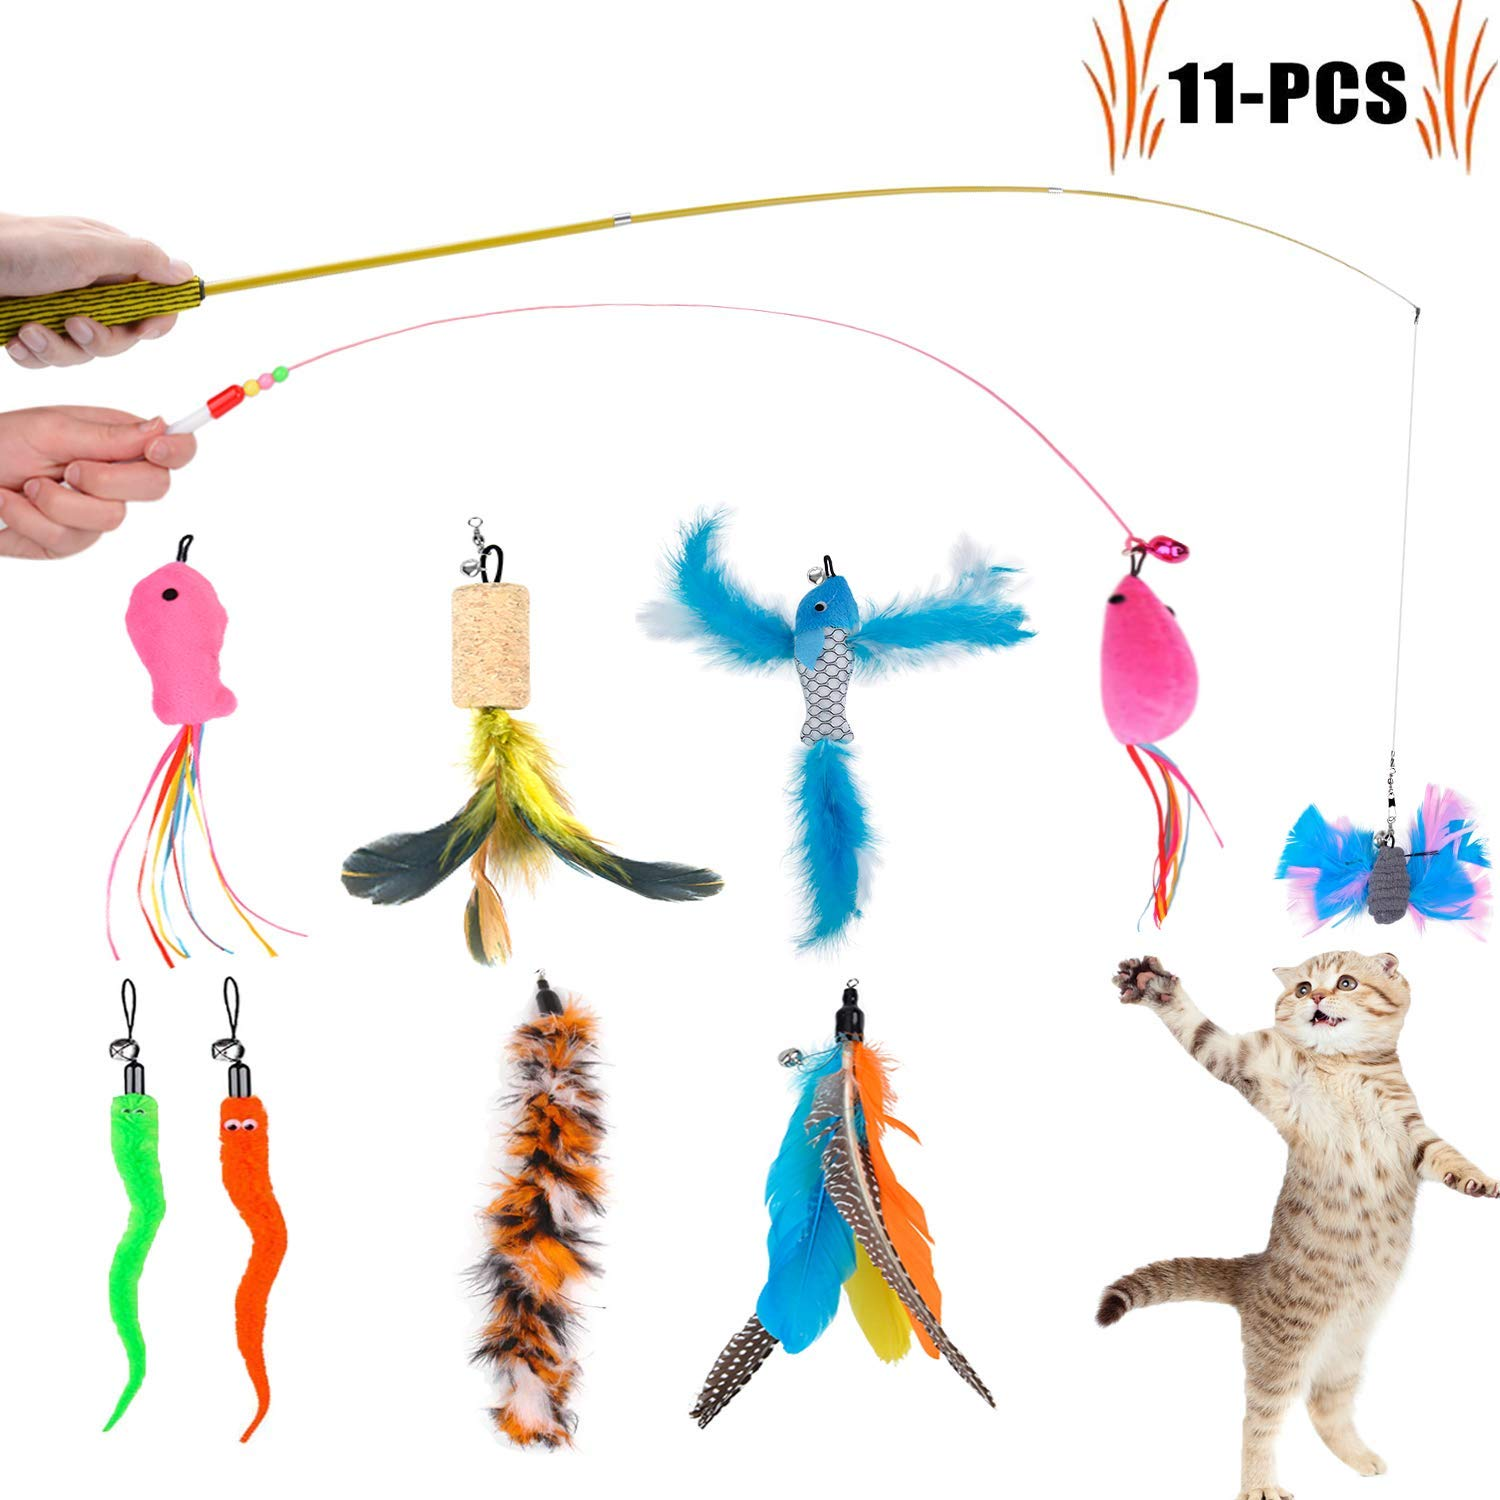 Legendog Cat Teaser Wand, Cat Wand Toy With Natural 9 Assorted Feather Teaser With Bell Refills, Interactive Cat Feather Toys For Kitten, Fun Exerciser Playing Feather Cat Toys